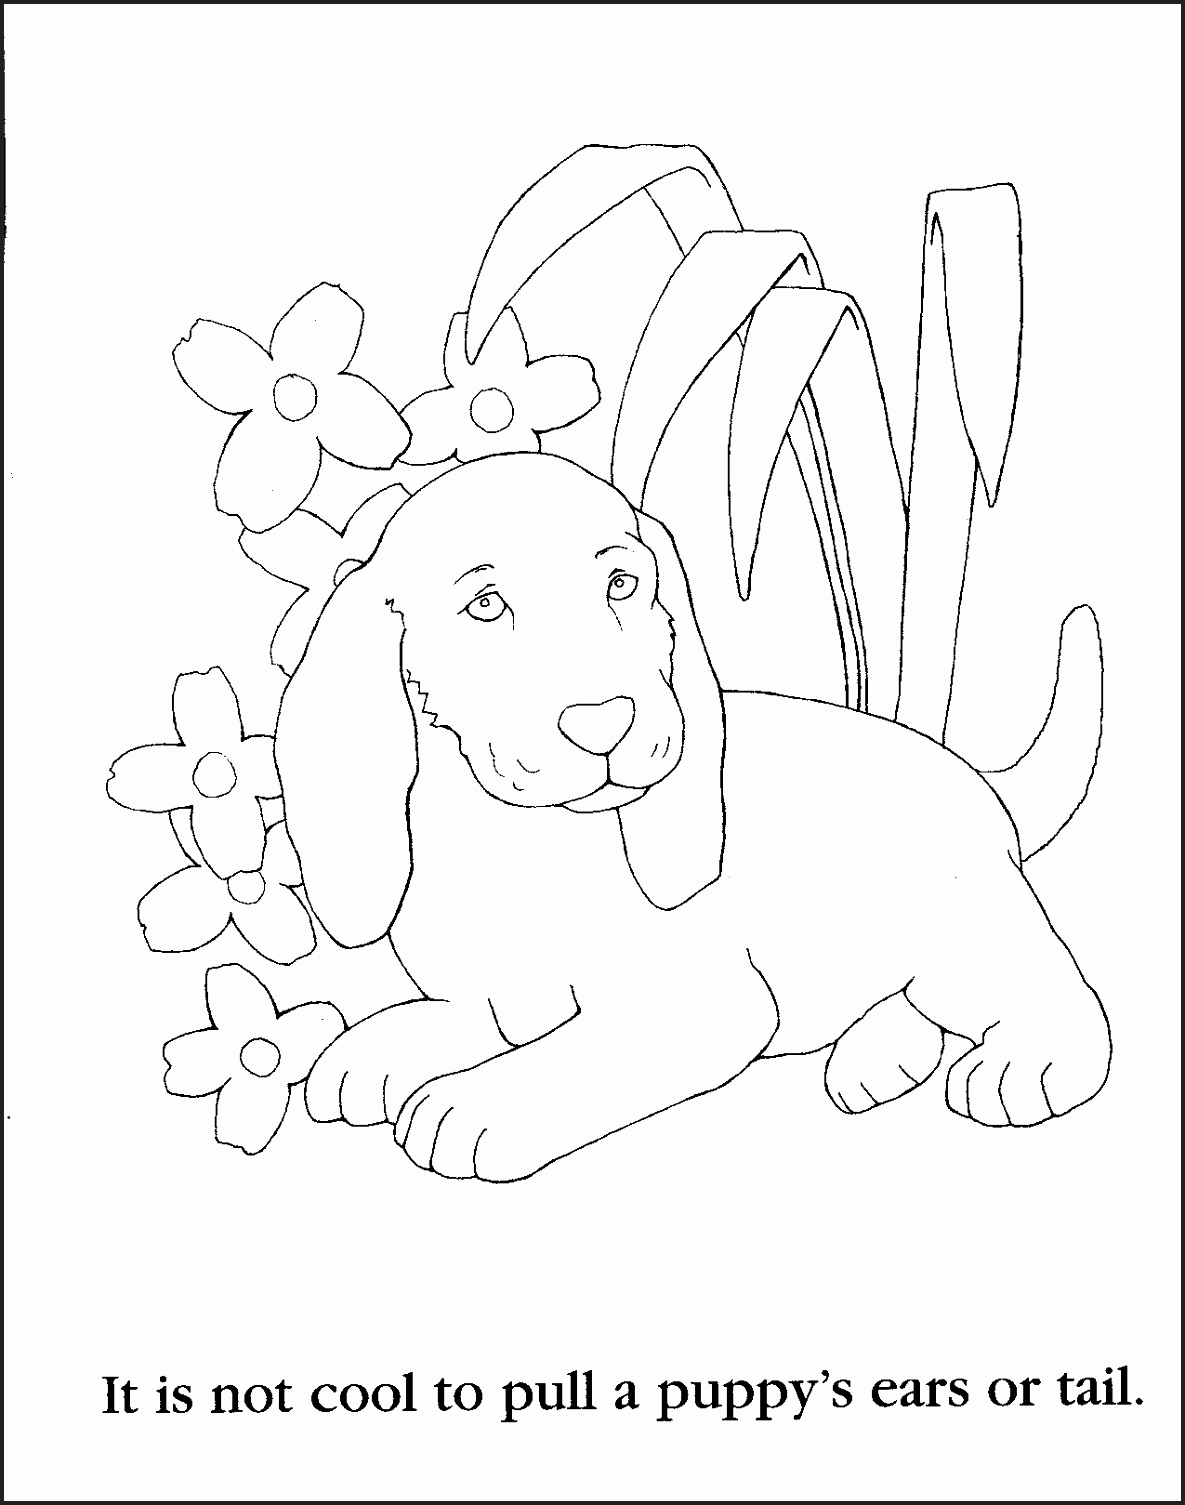 coloring pages for 9 year olds coloring pages for 8910 year old girls to download and olds 9 year coloring for pages